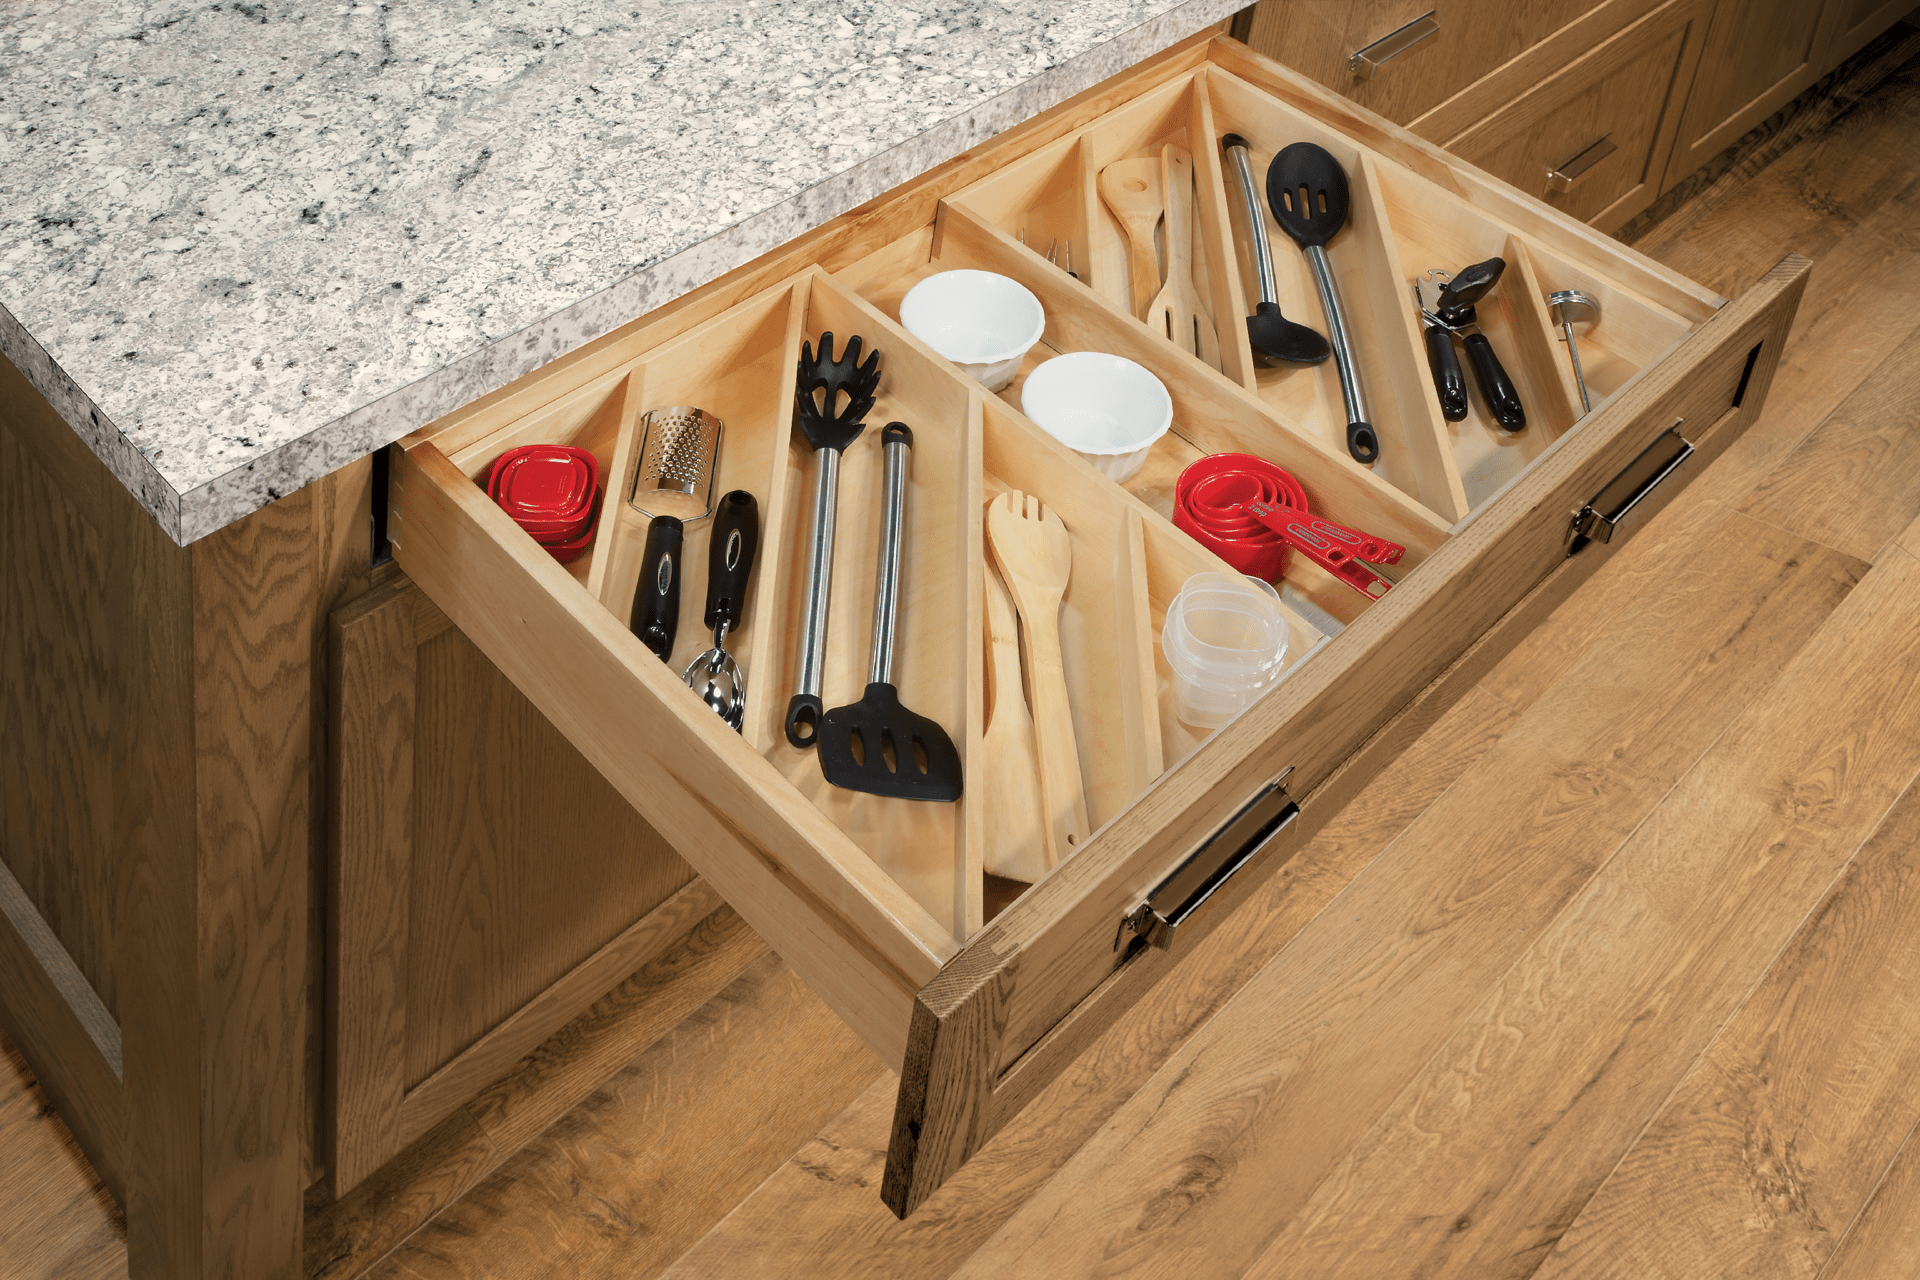 Utensil drawer organizer angled